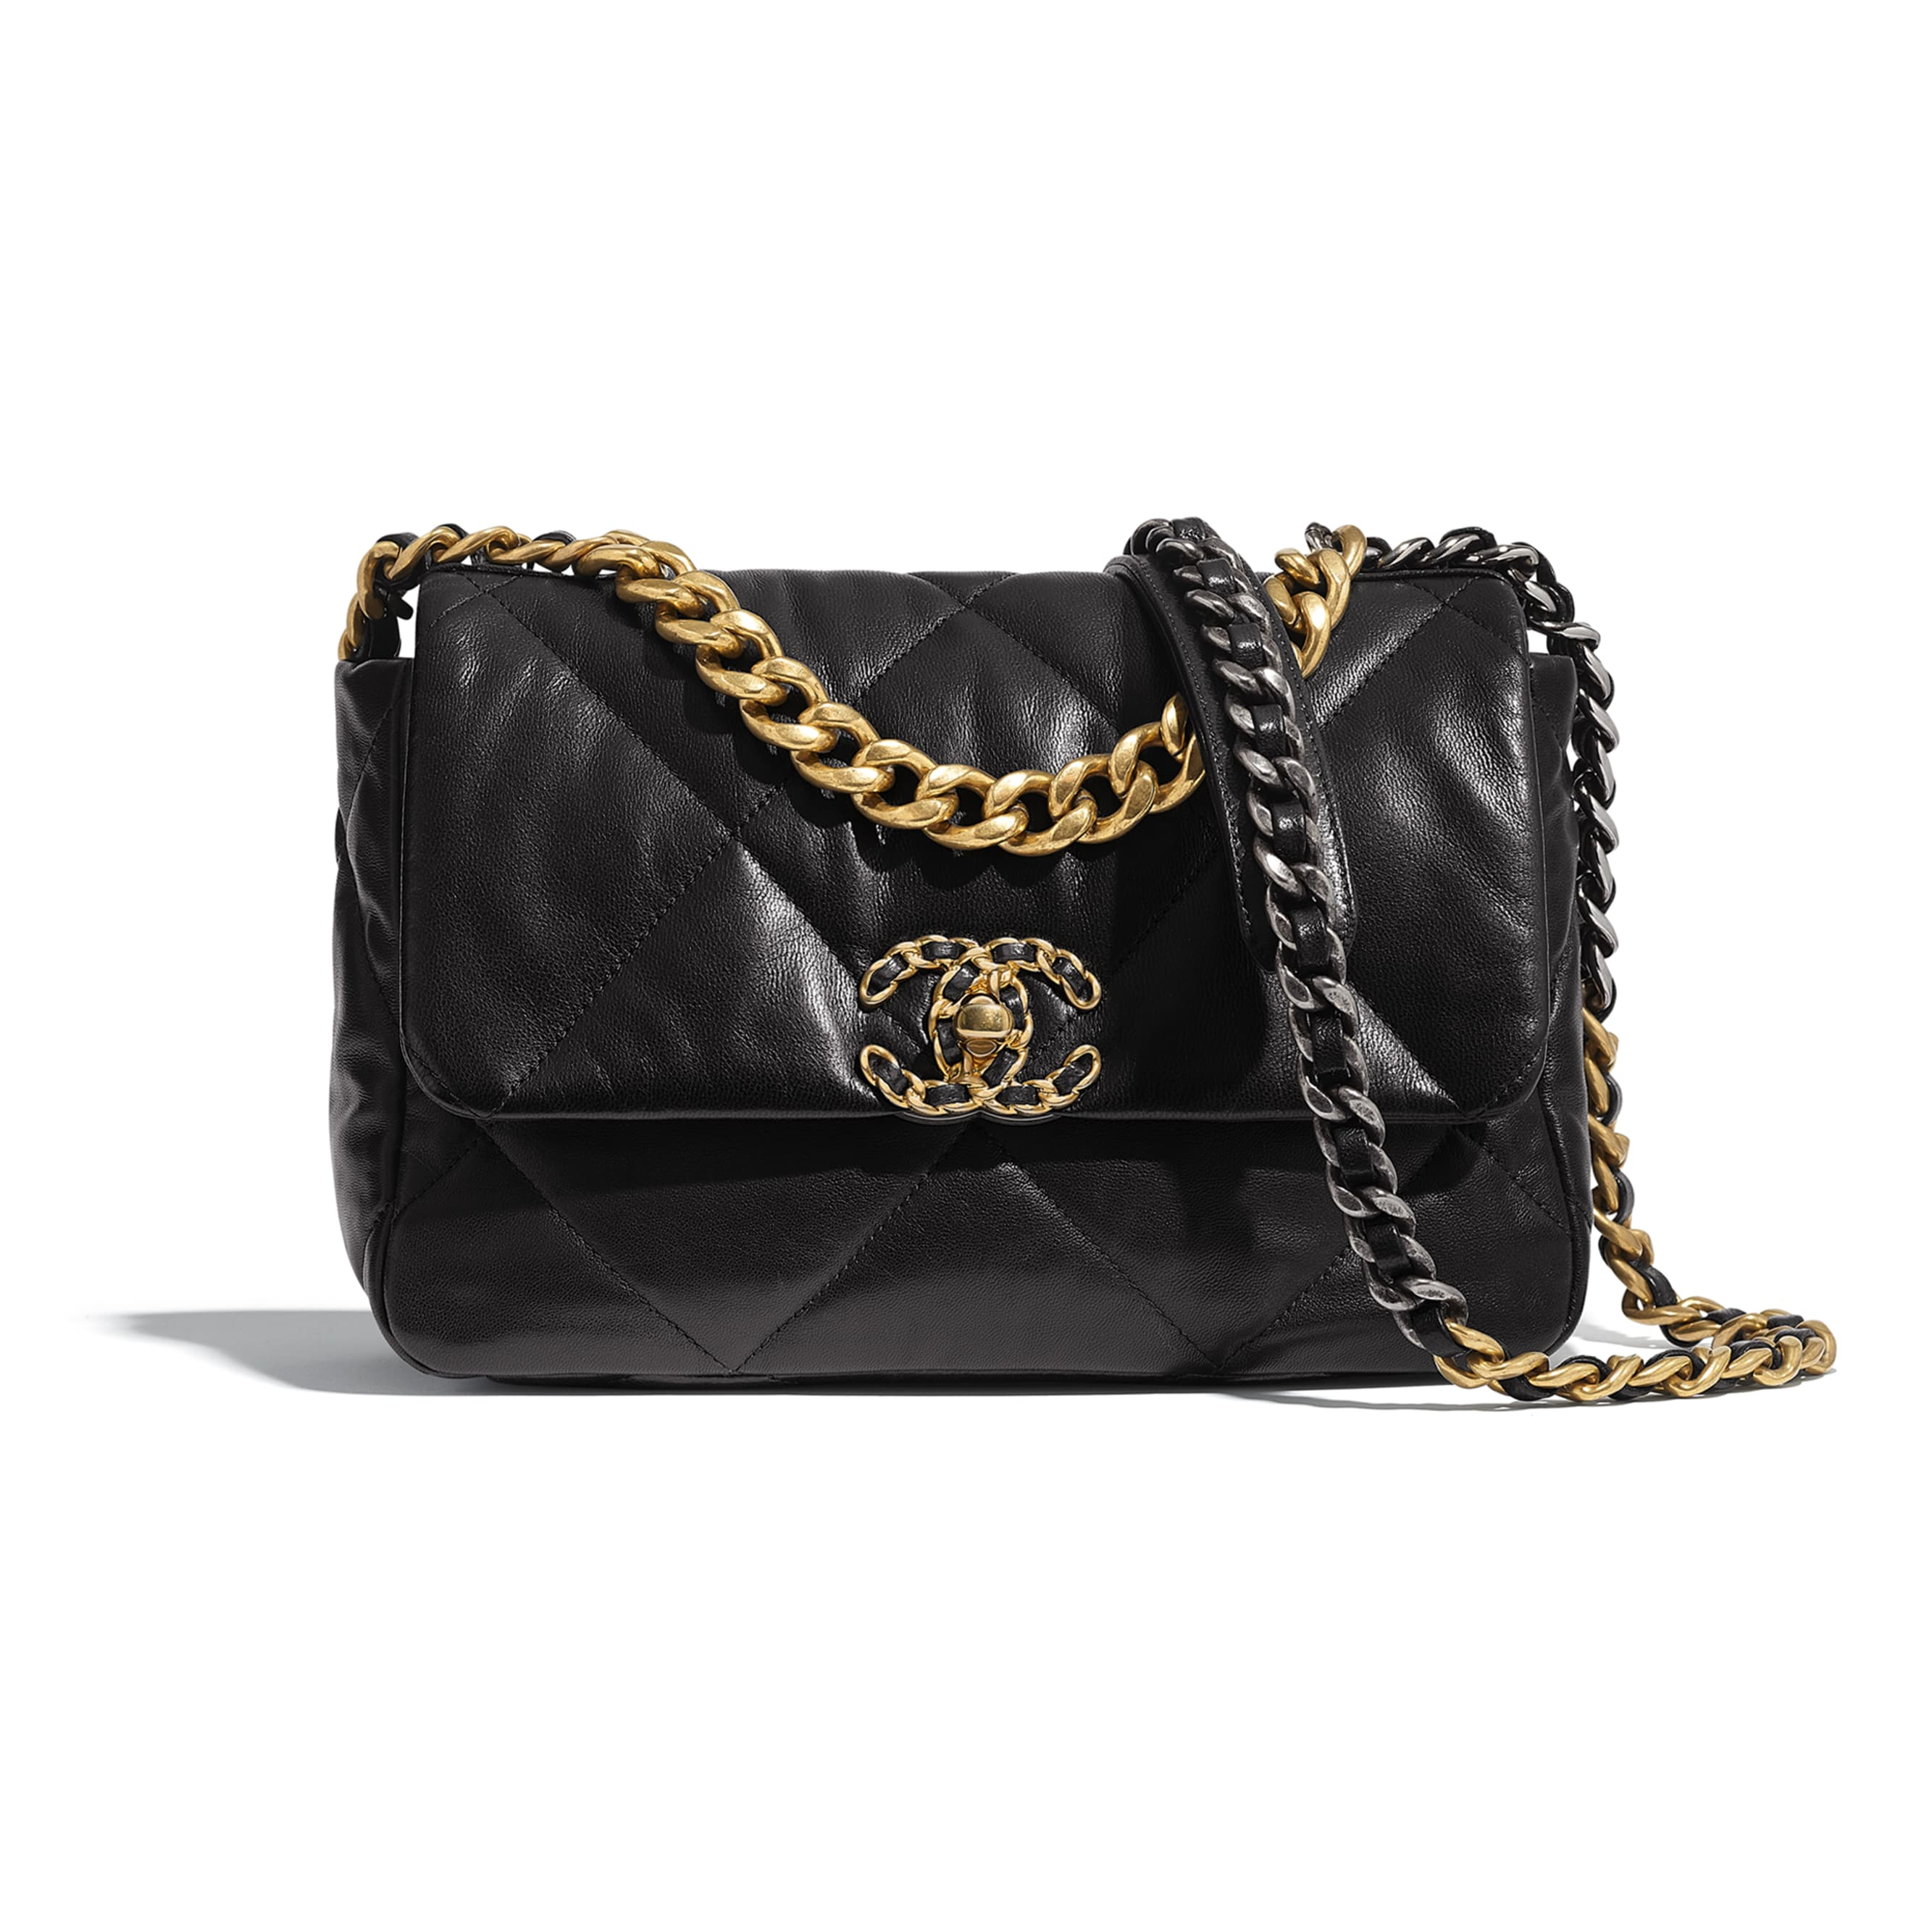 CHANEL 19 Flap Bag - Black - Lambskin, Gold-Tone, Silver-Tone & Ruthenium-Finish Metal - Default view - see standard sized version